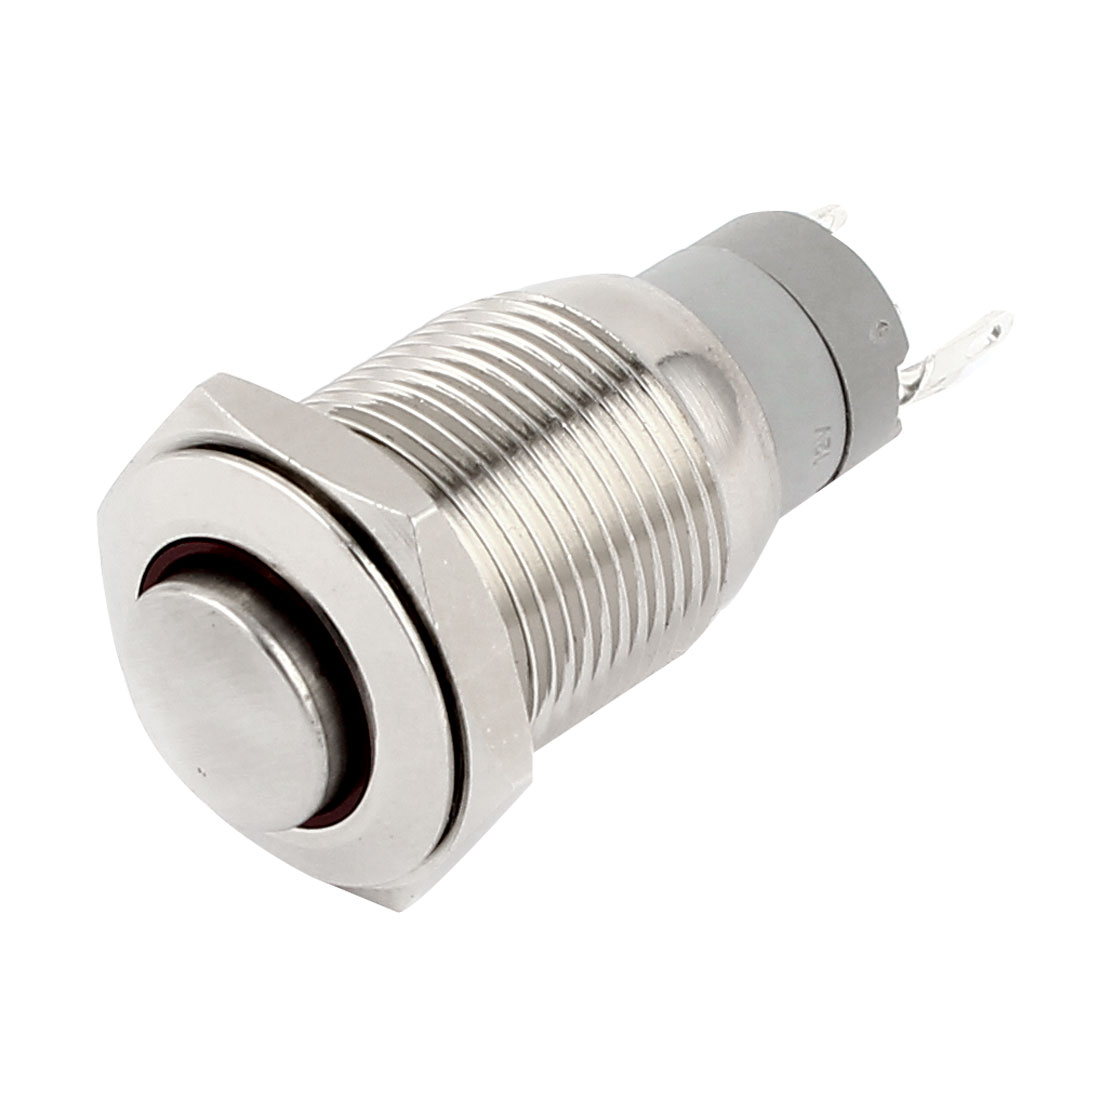 DC 12V Red Indicative LED Angel Eye High Flat Head SPDT 1NO 1NC 16mm Thread Self-Locking Metal Push Button Switch